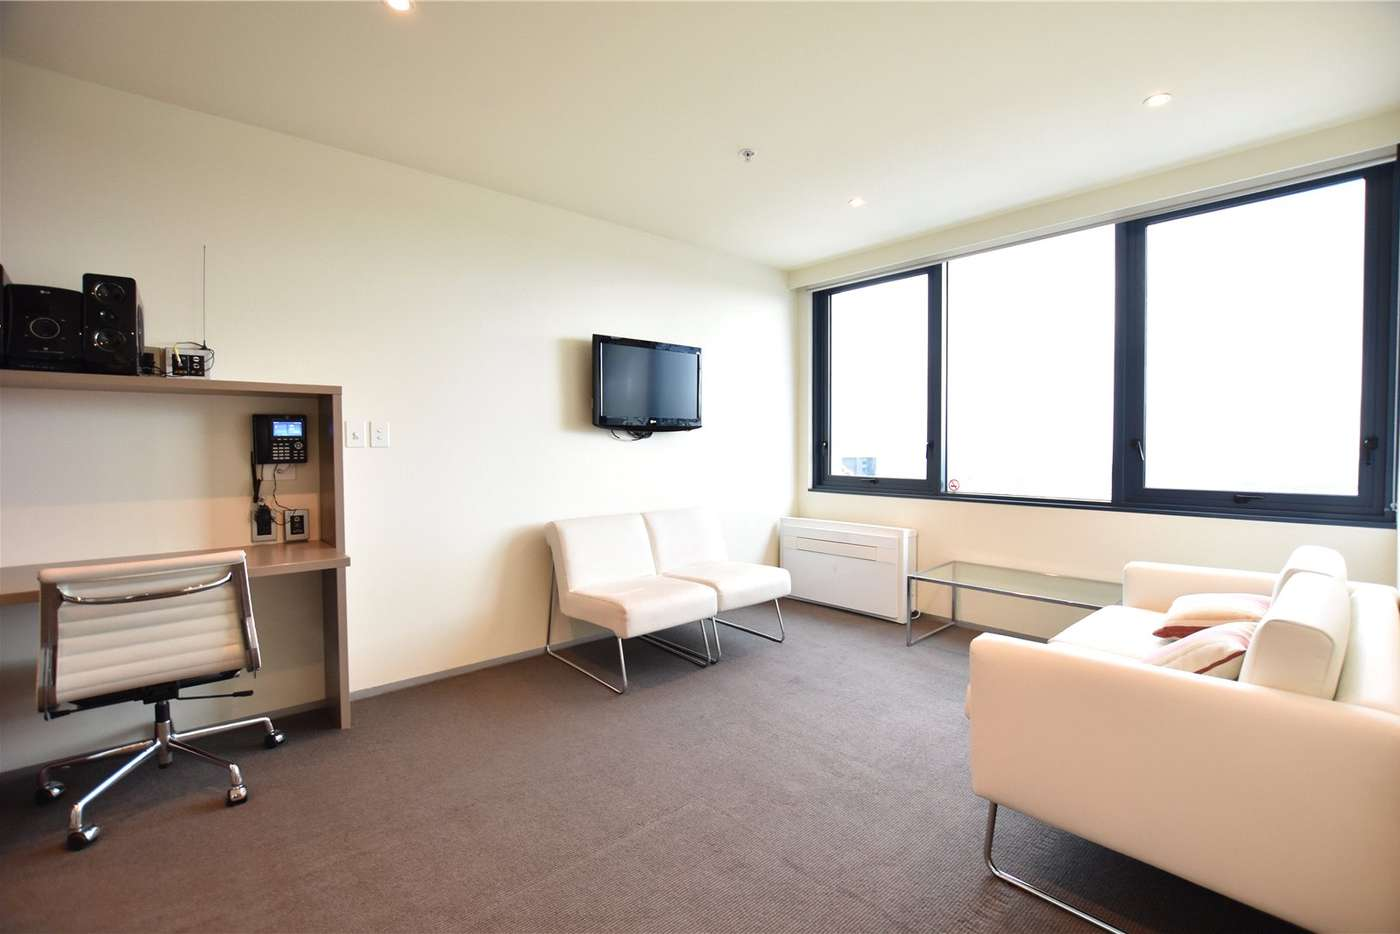 Main view of Homely apartment listing, 2701/181 ABeckett Street, Melbourne VIC 3000